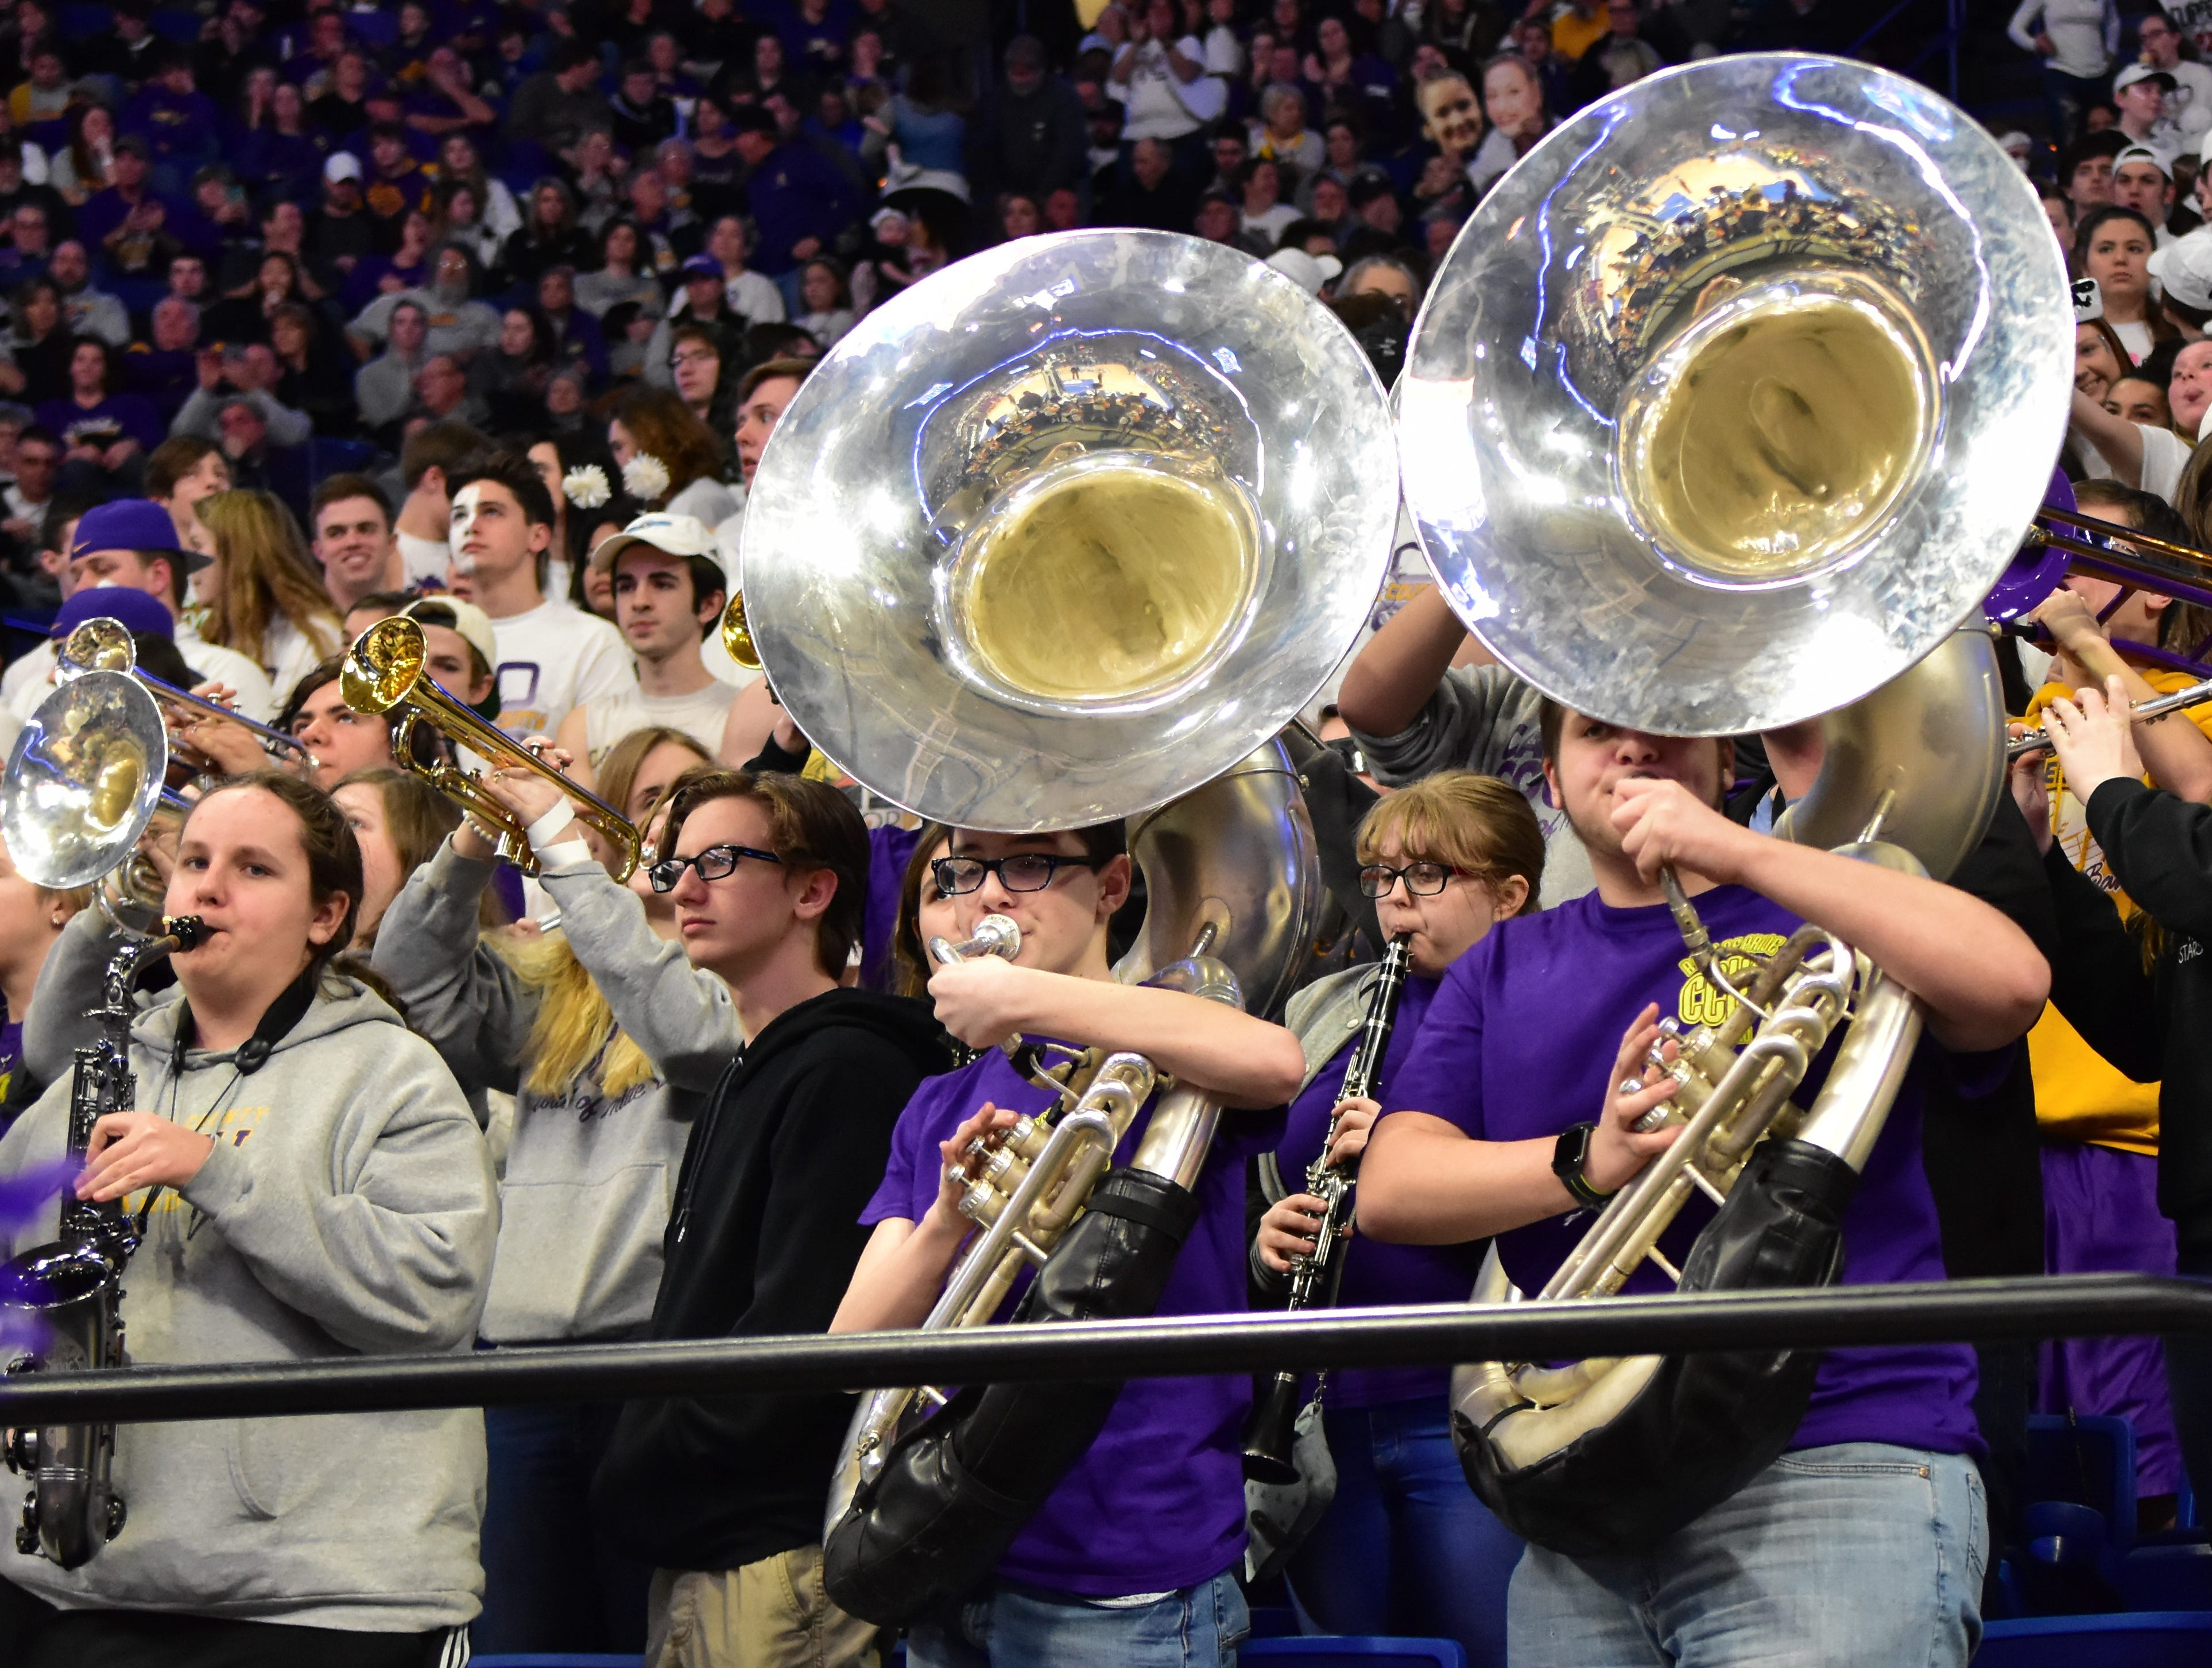 The Campbell County band plays in jubilation as the Camels advance to the quarterfinals at the KHSAA Sweet 16 Tournament at Rupp Arena in Lexington, KY, March 6, 2019